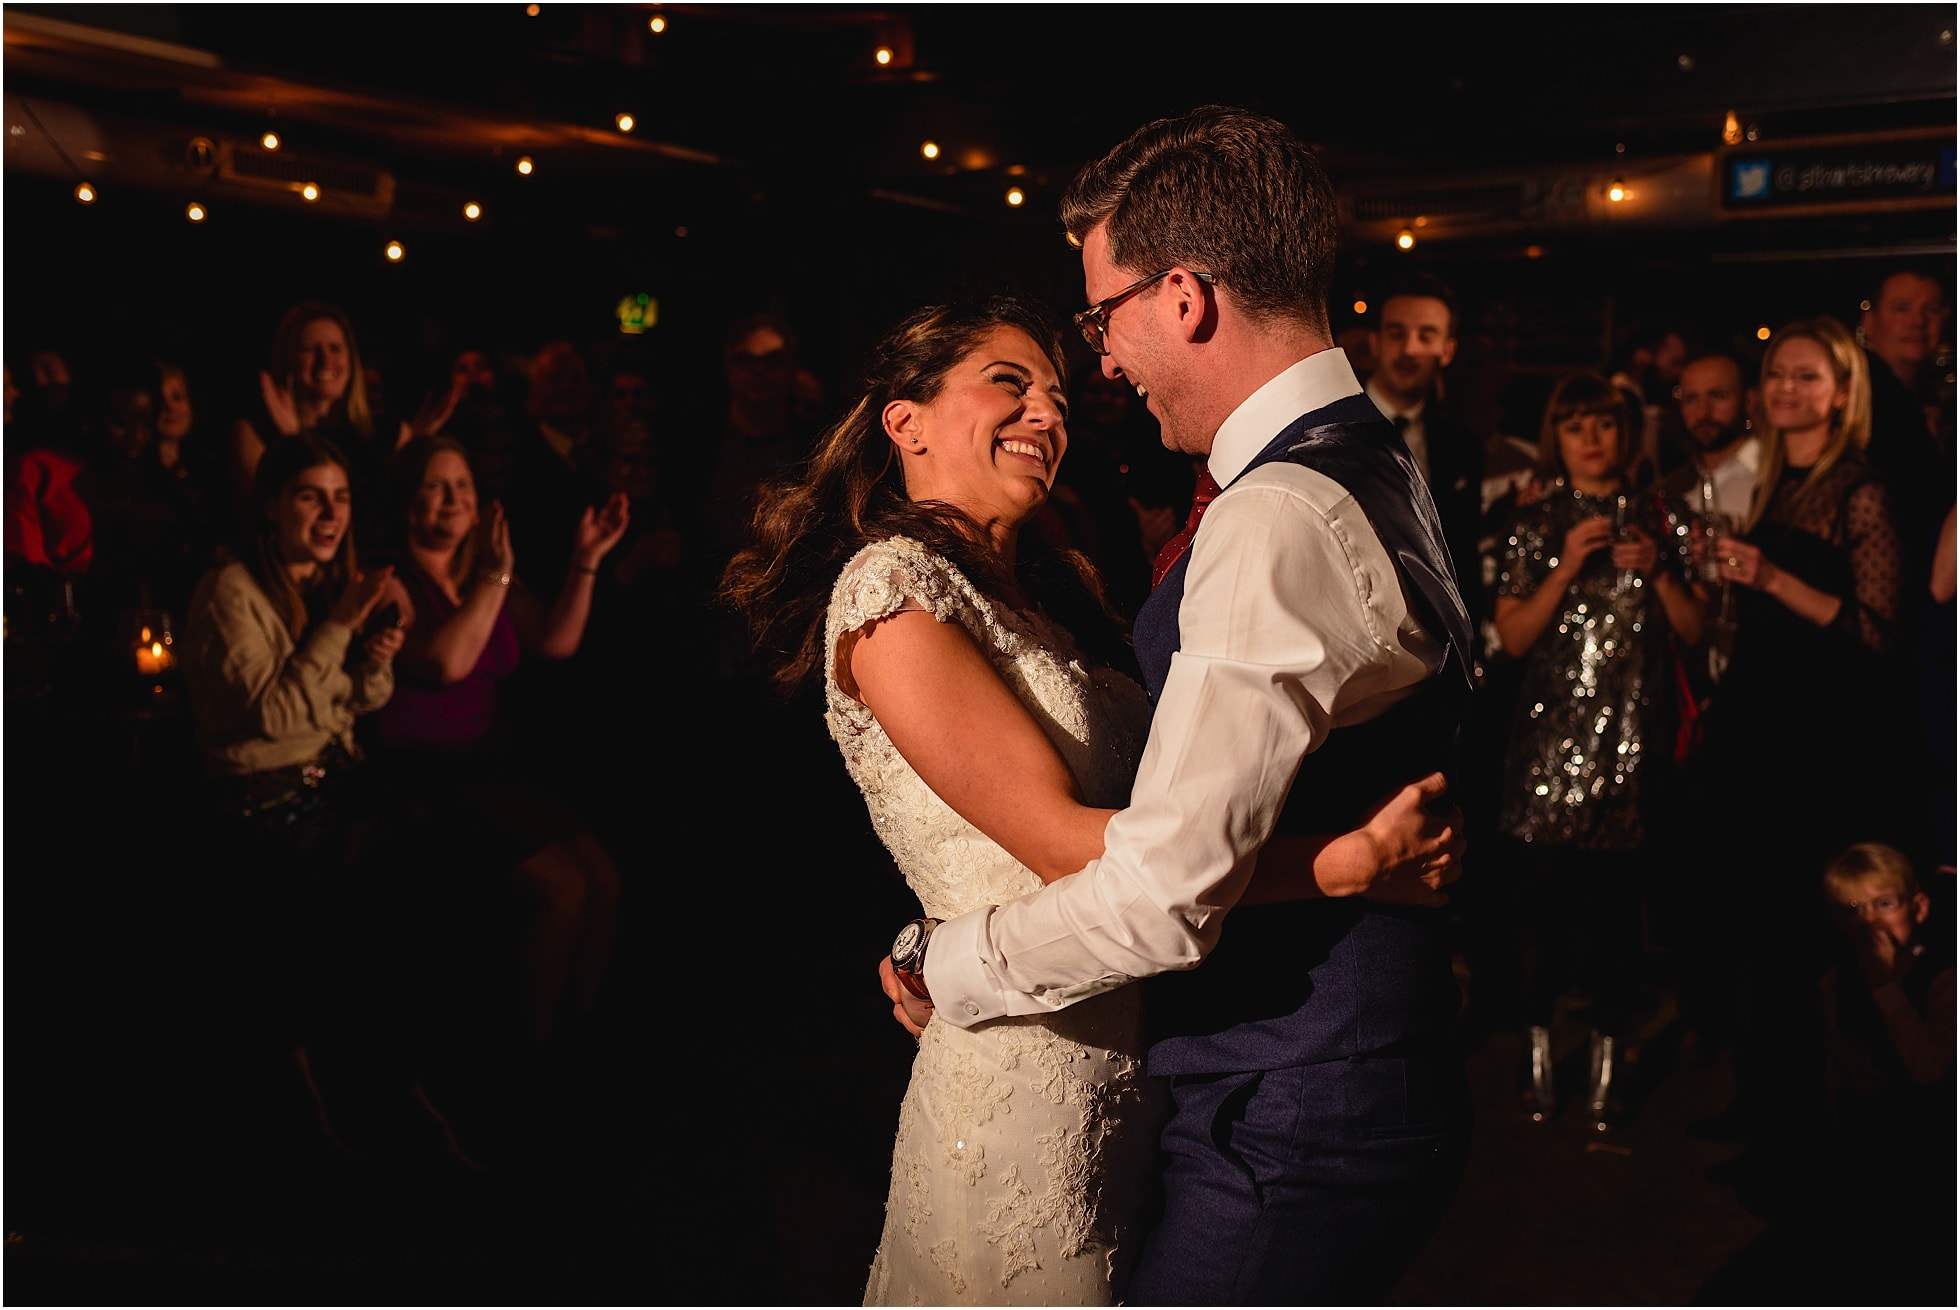 first dance at st barts brewery wedding, london